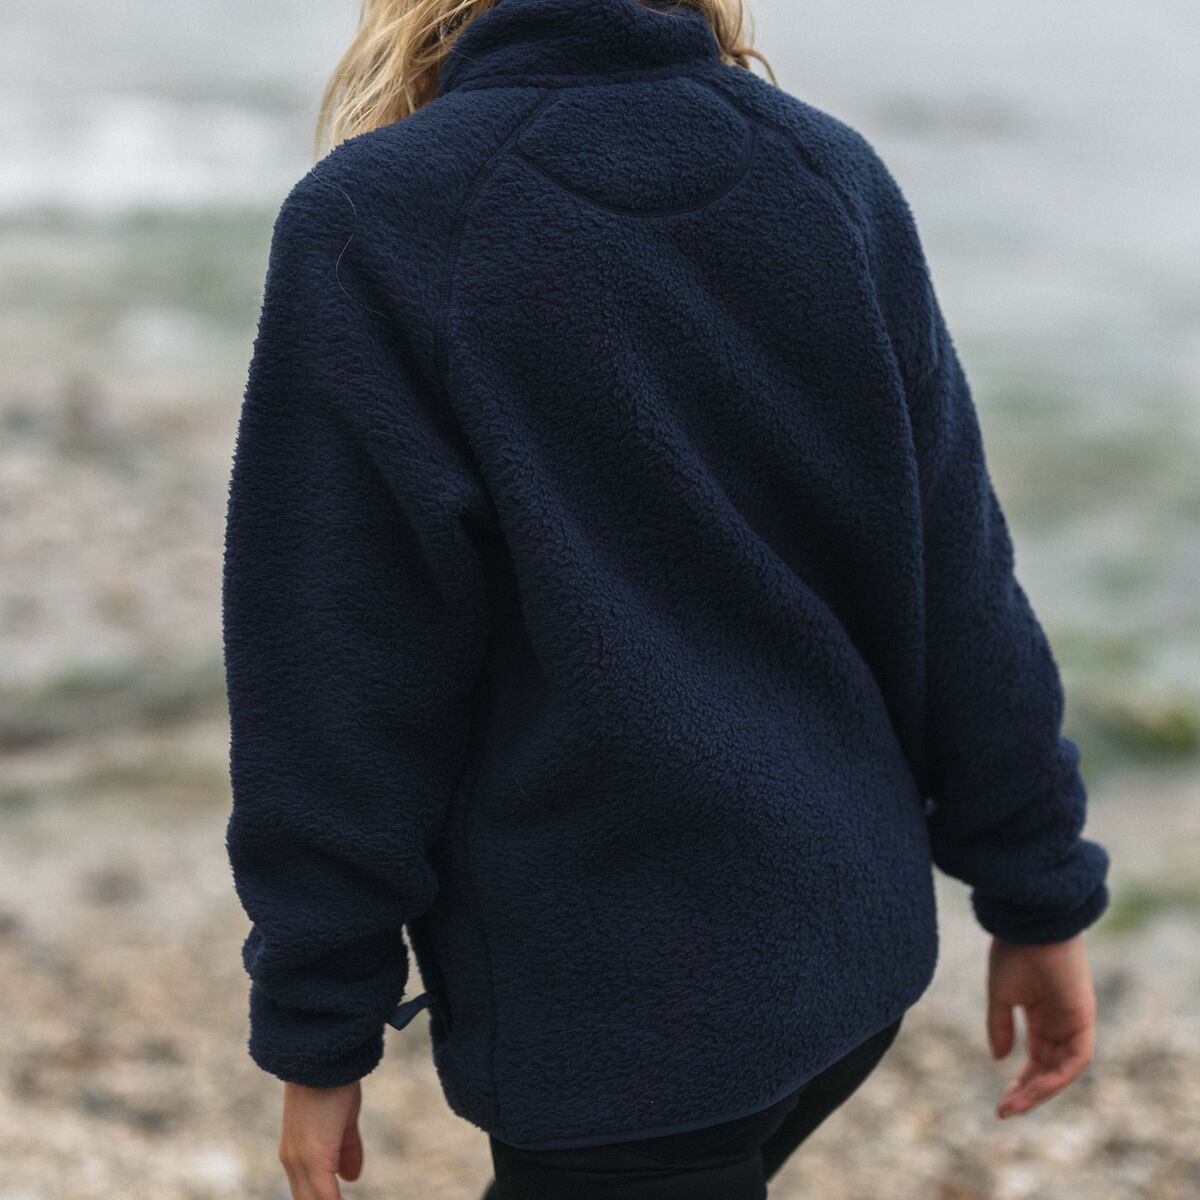 Home 1/4 Zip Sherpa Fleece - Navy image 3